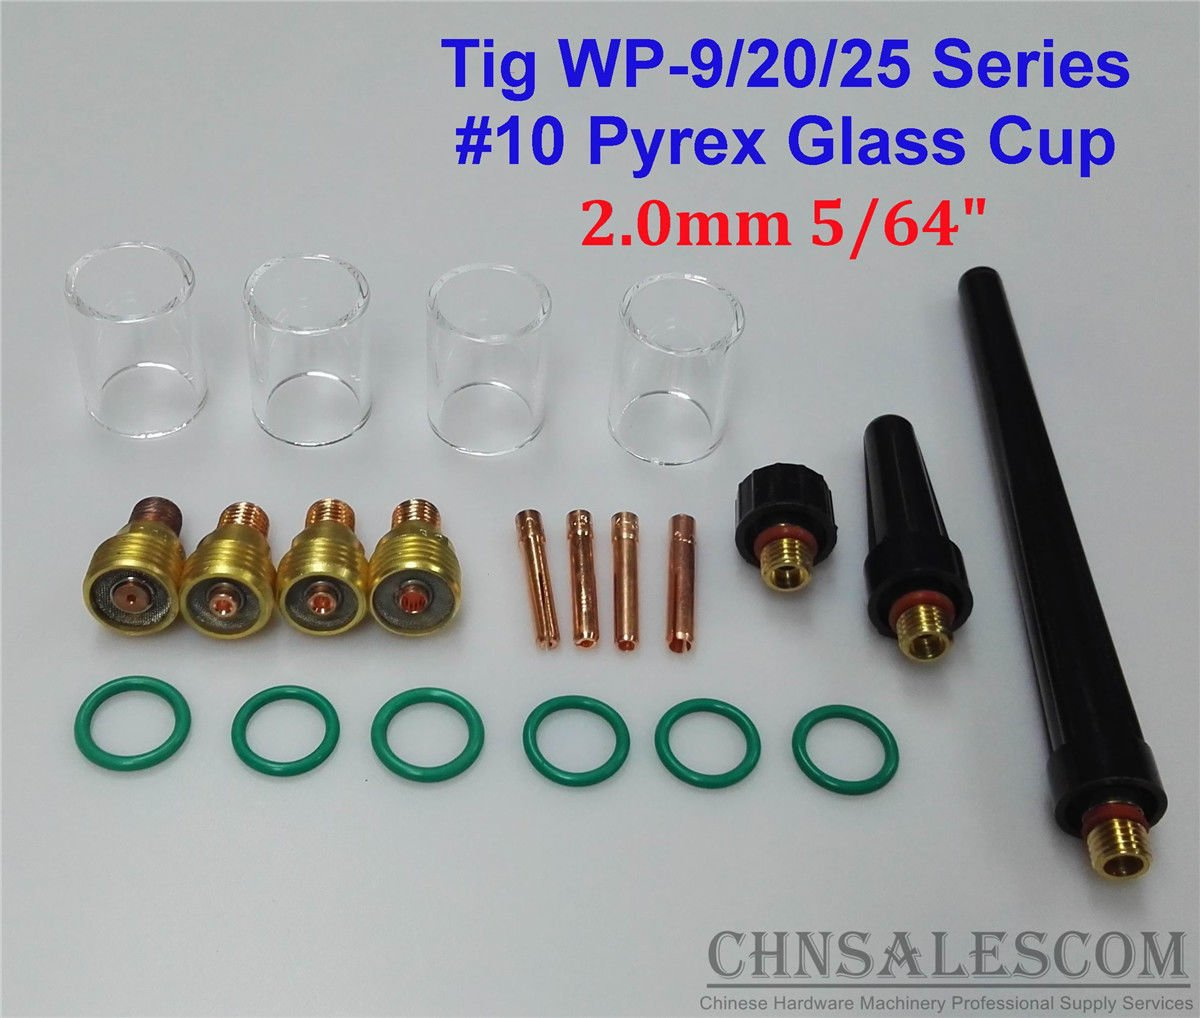 CHNsalescom 21 pcs TIG Welding Gas Lens #10 Pyrex Glass Cup Kit for WP-9/20/25 2.0mm 5/64'